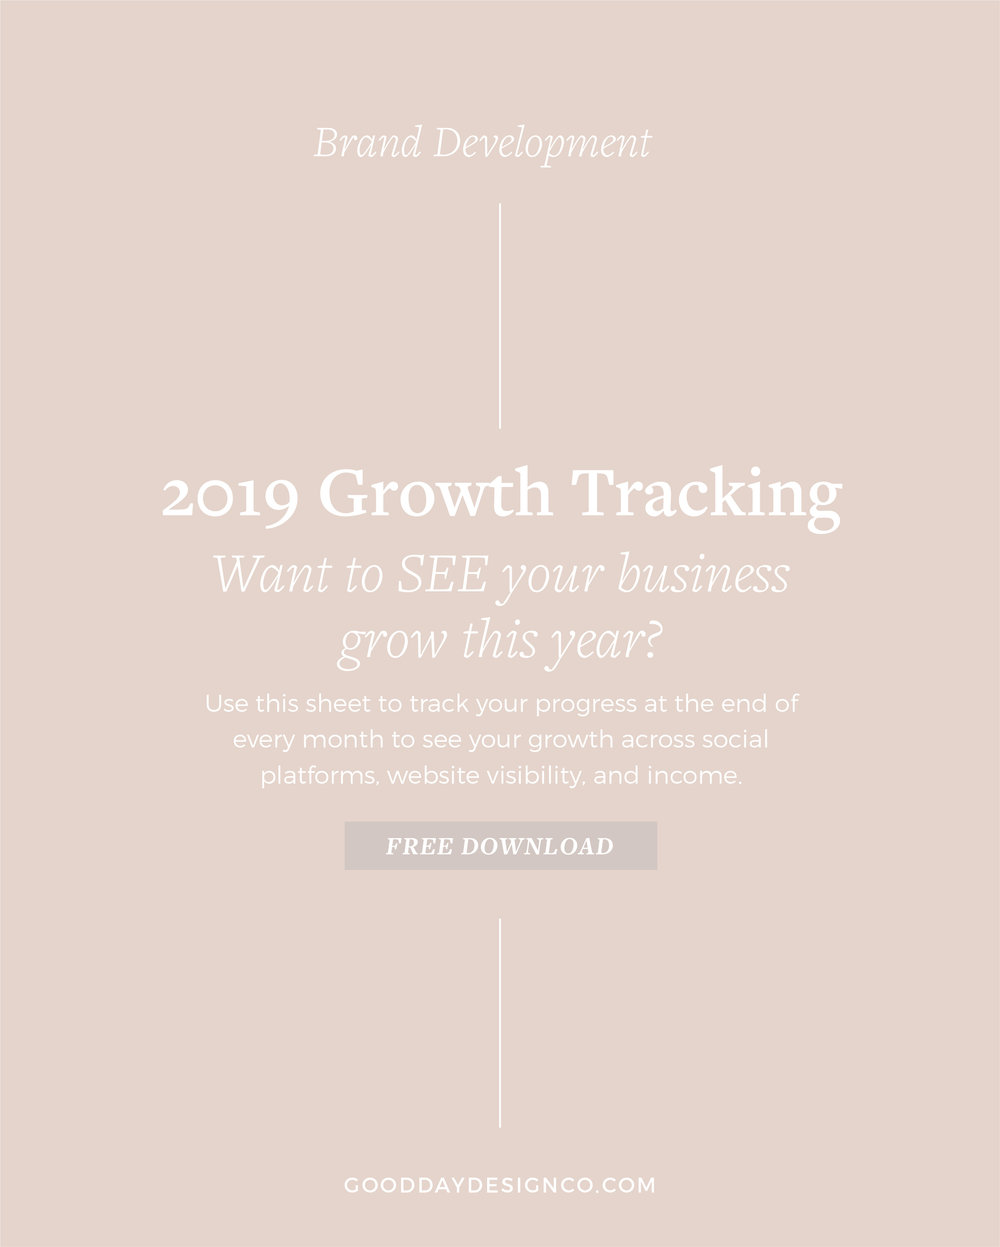 Good Day Design Co_Growth Tracking_2019-01.jpg